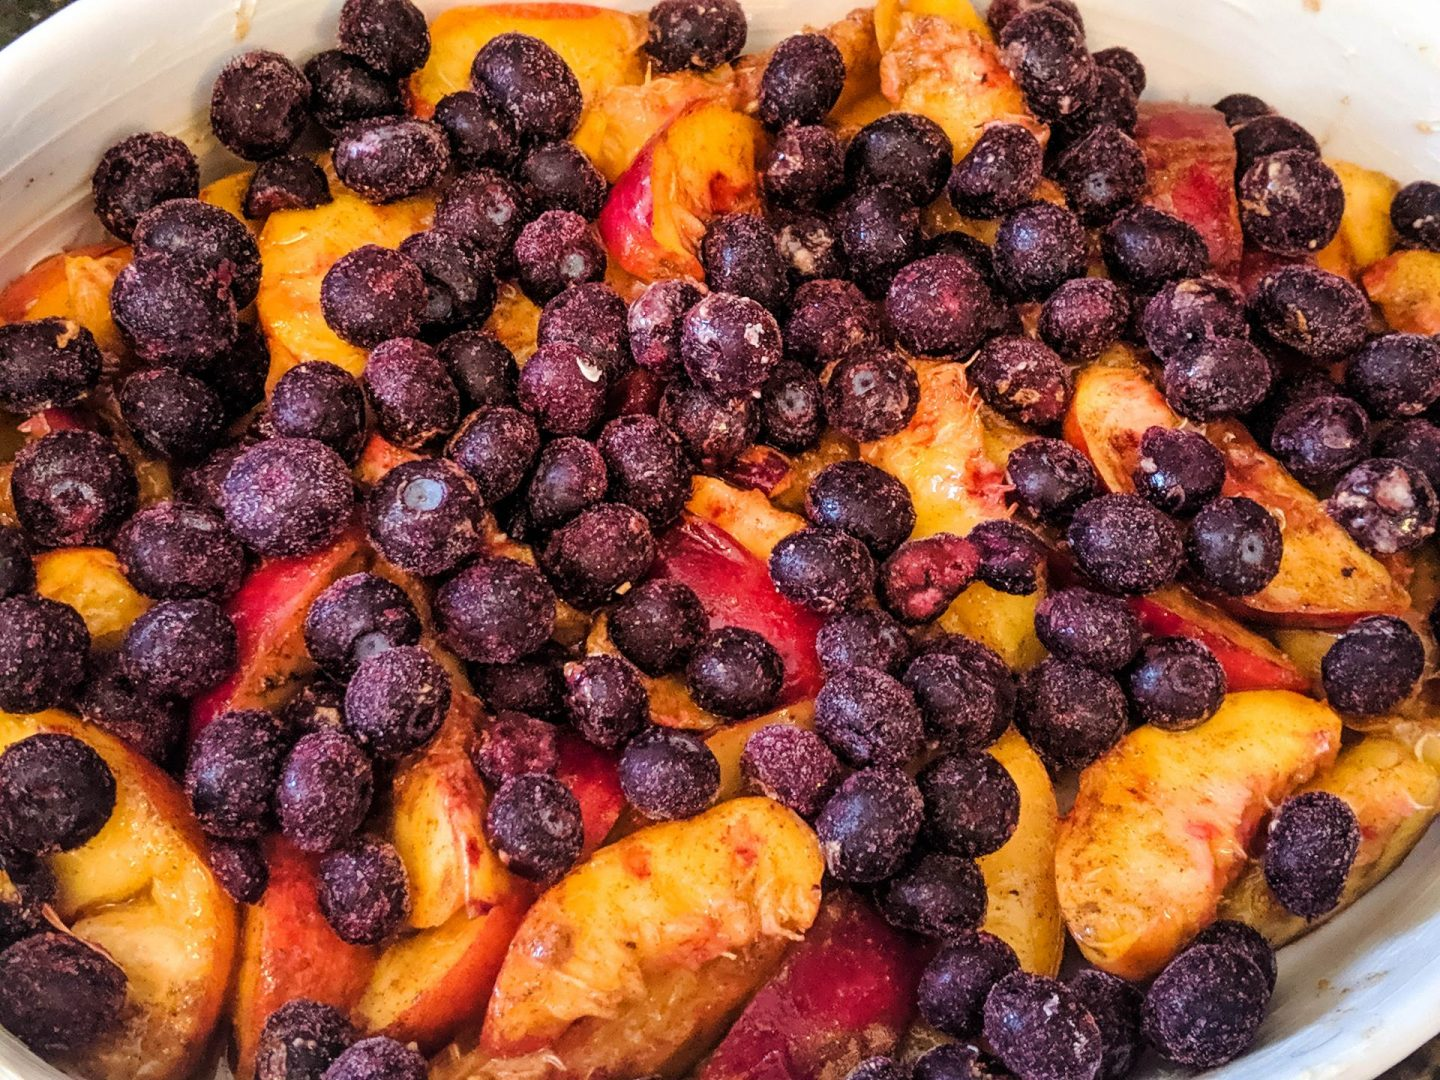 nectarines and blueberries